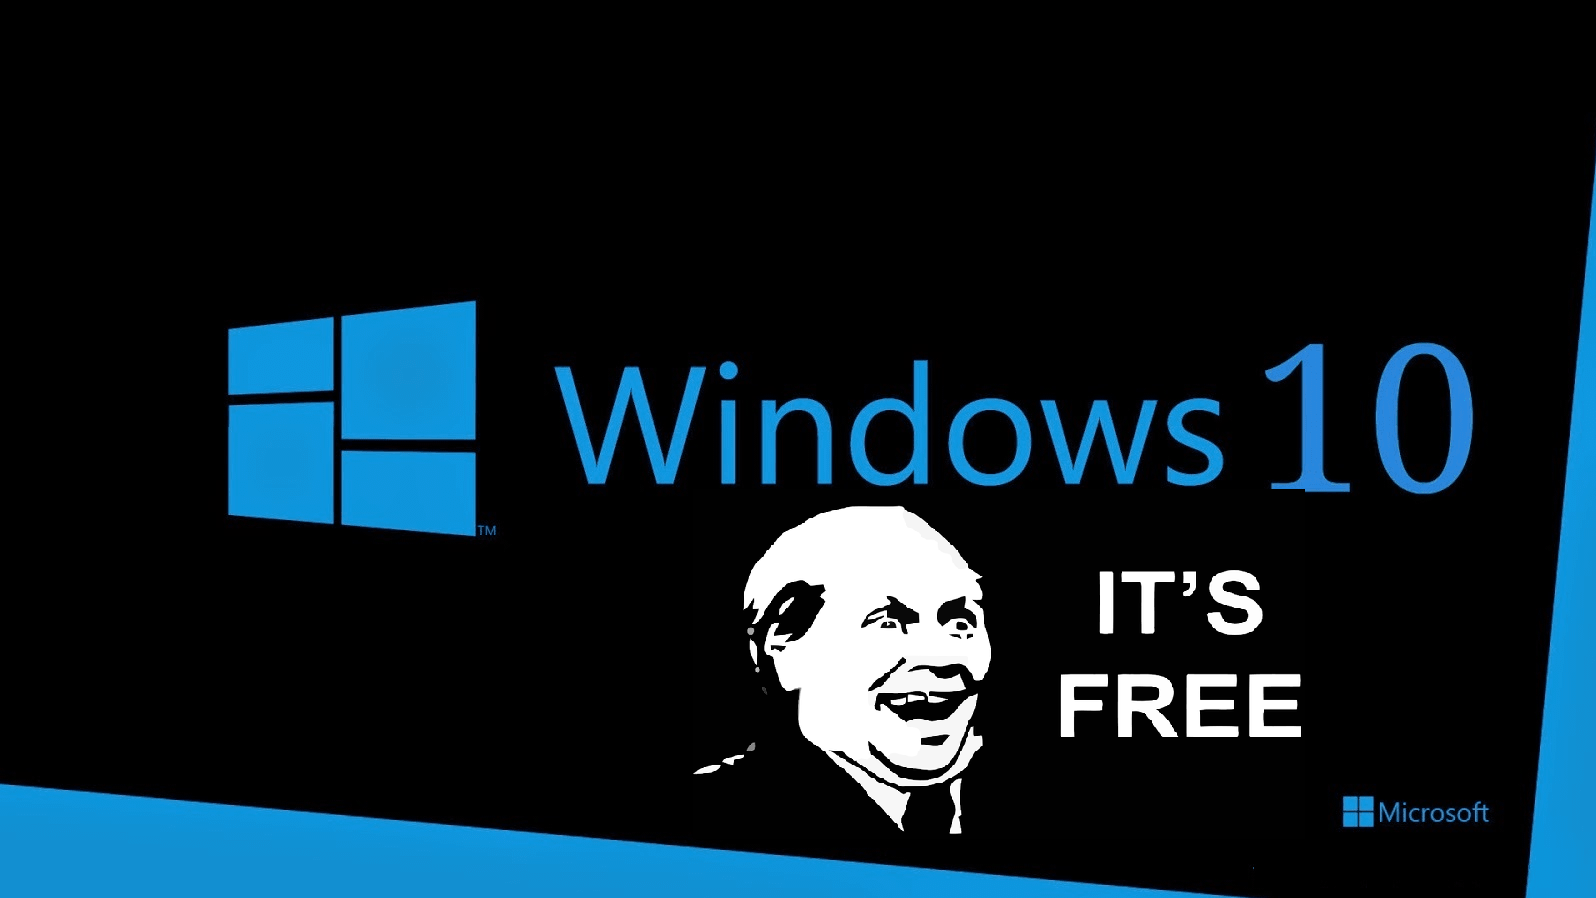 Windows 10 Its Free